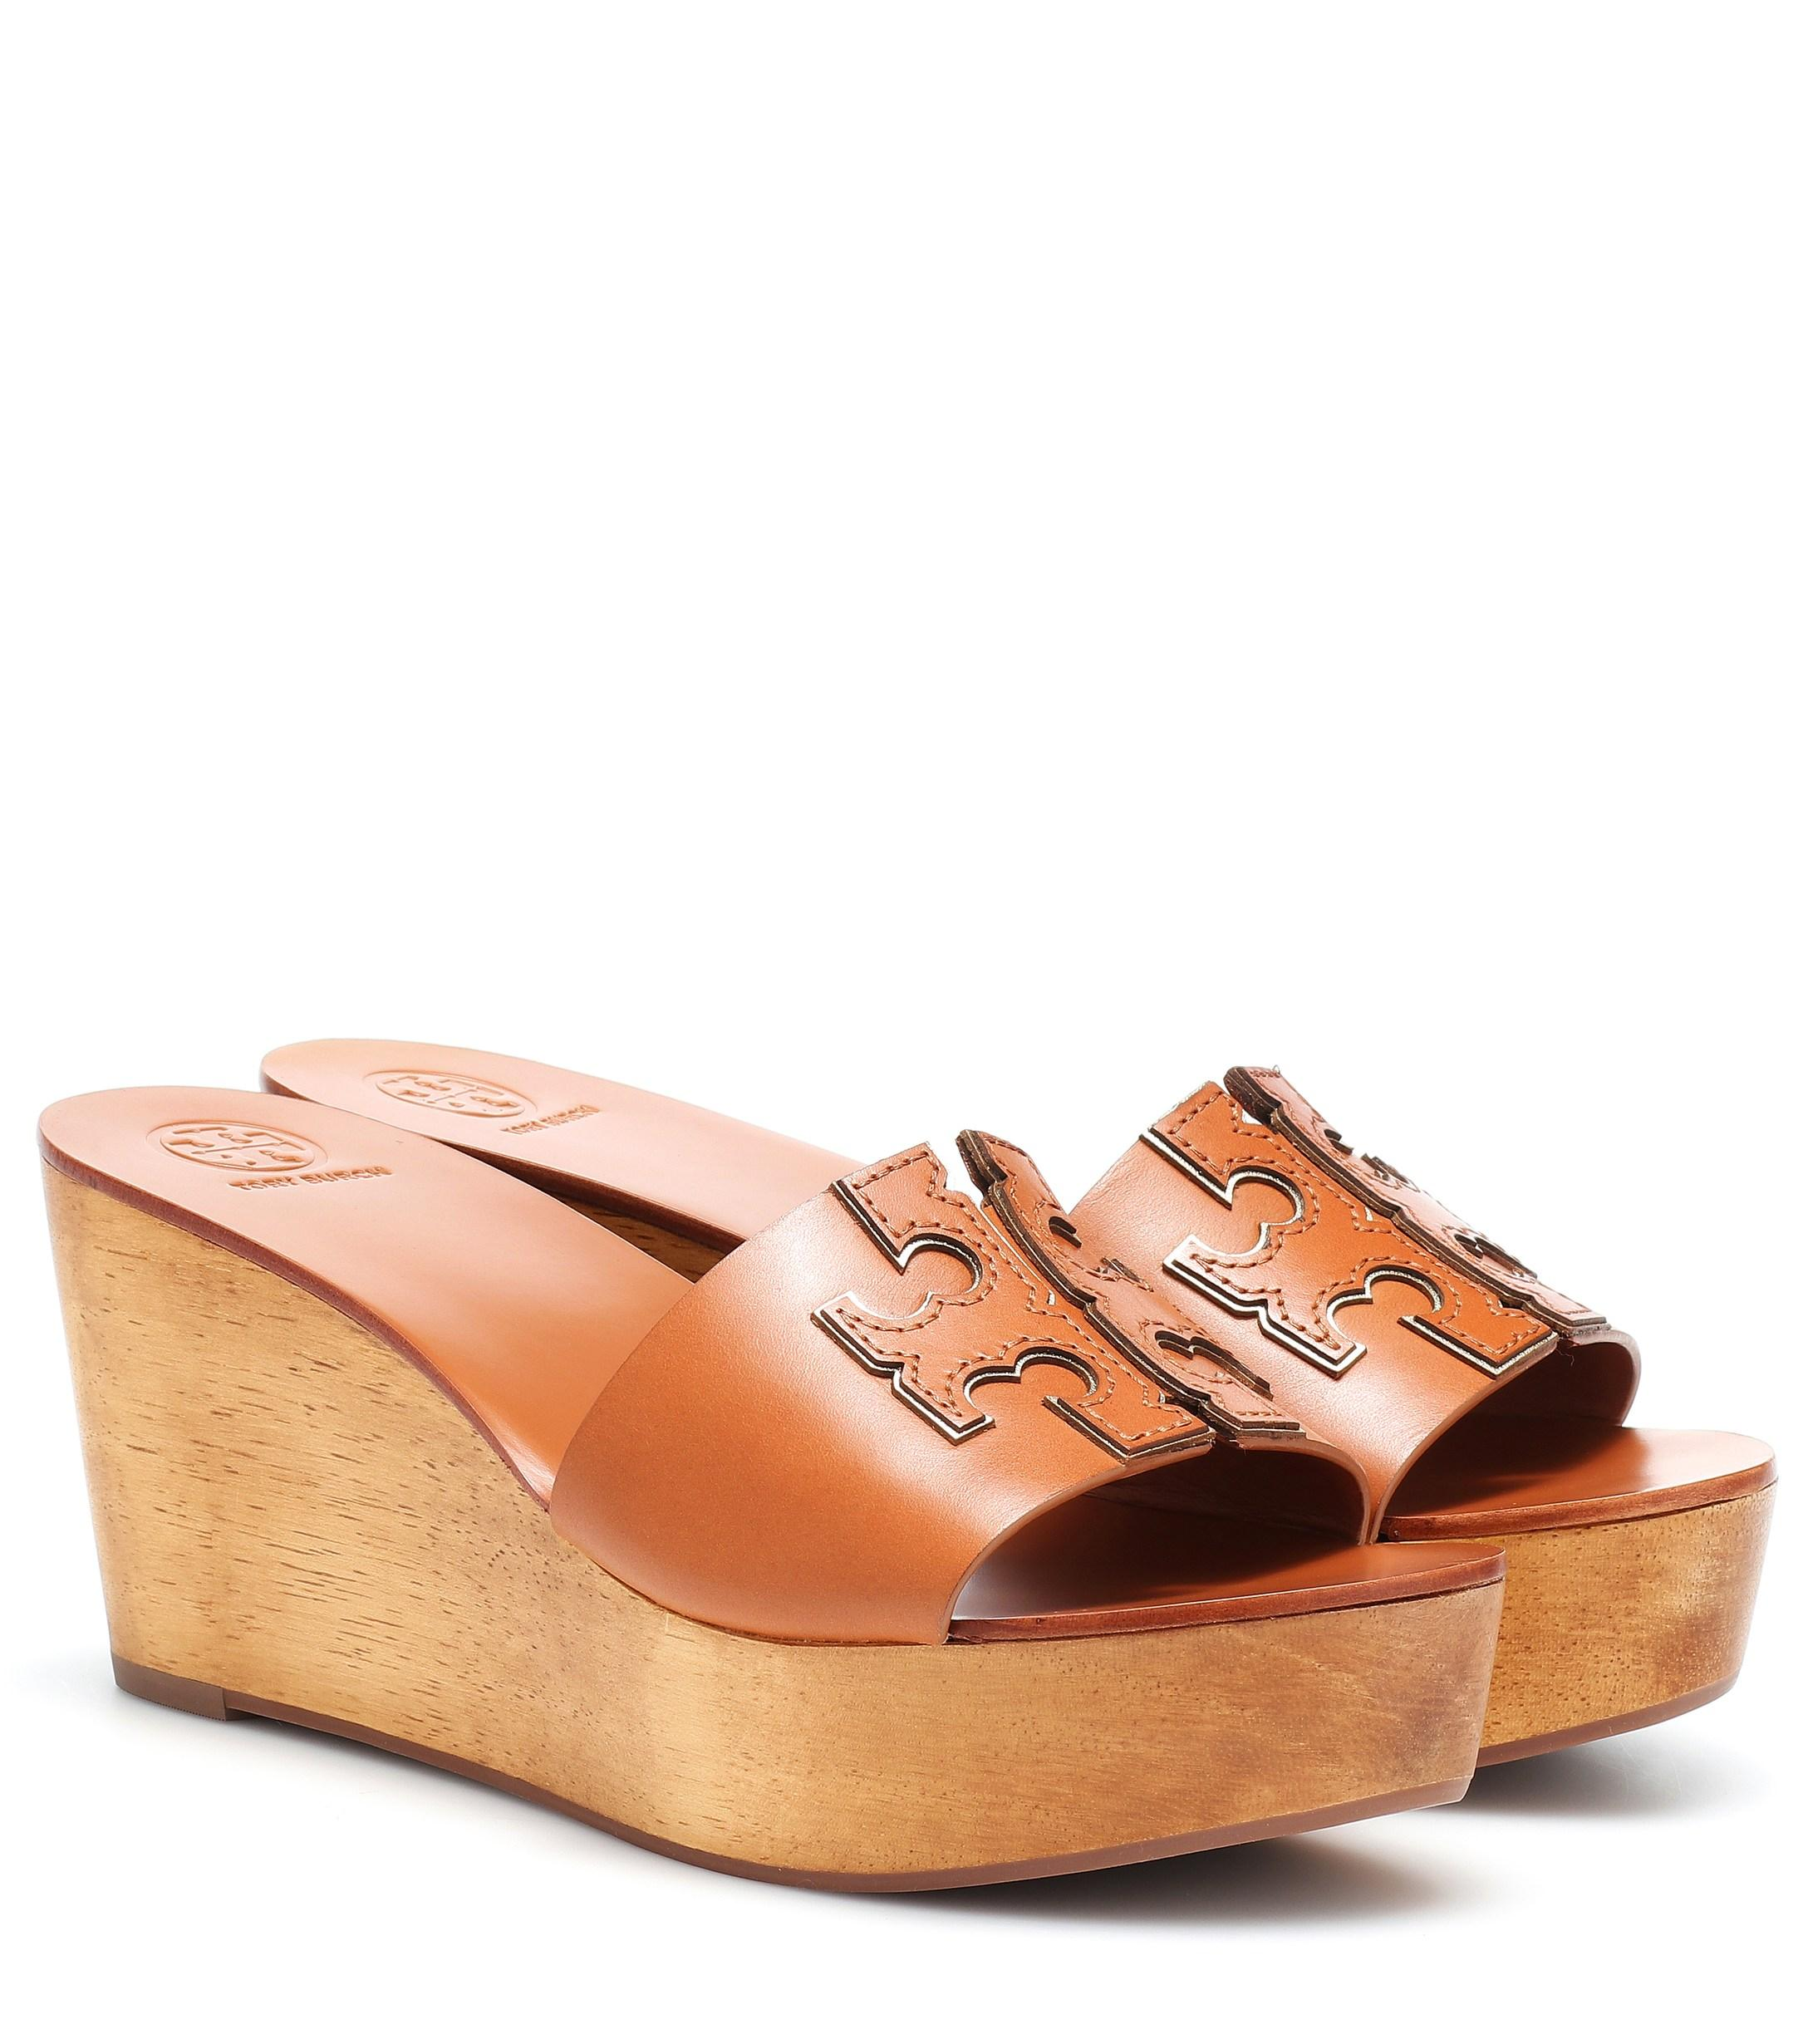 ae3b368b781de0 Tory Burch. Women s Brown Ines 80mm Leather Wedge Sandals.  248 From  Mytheresa